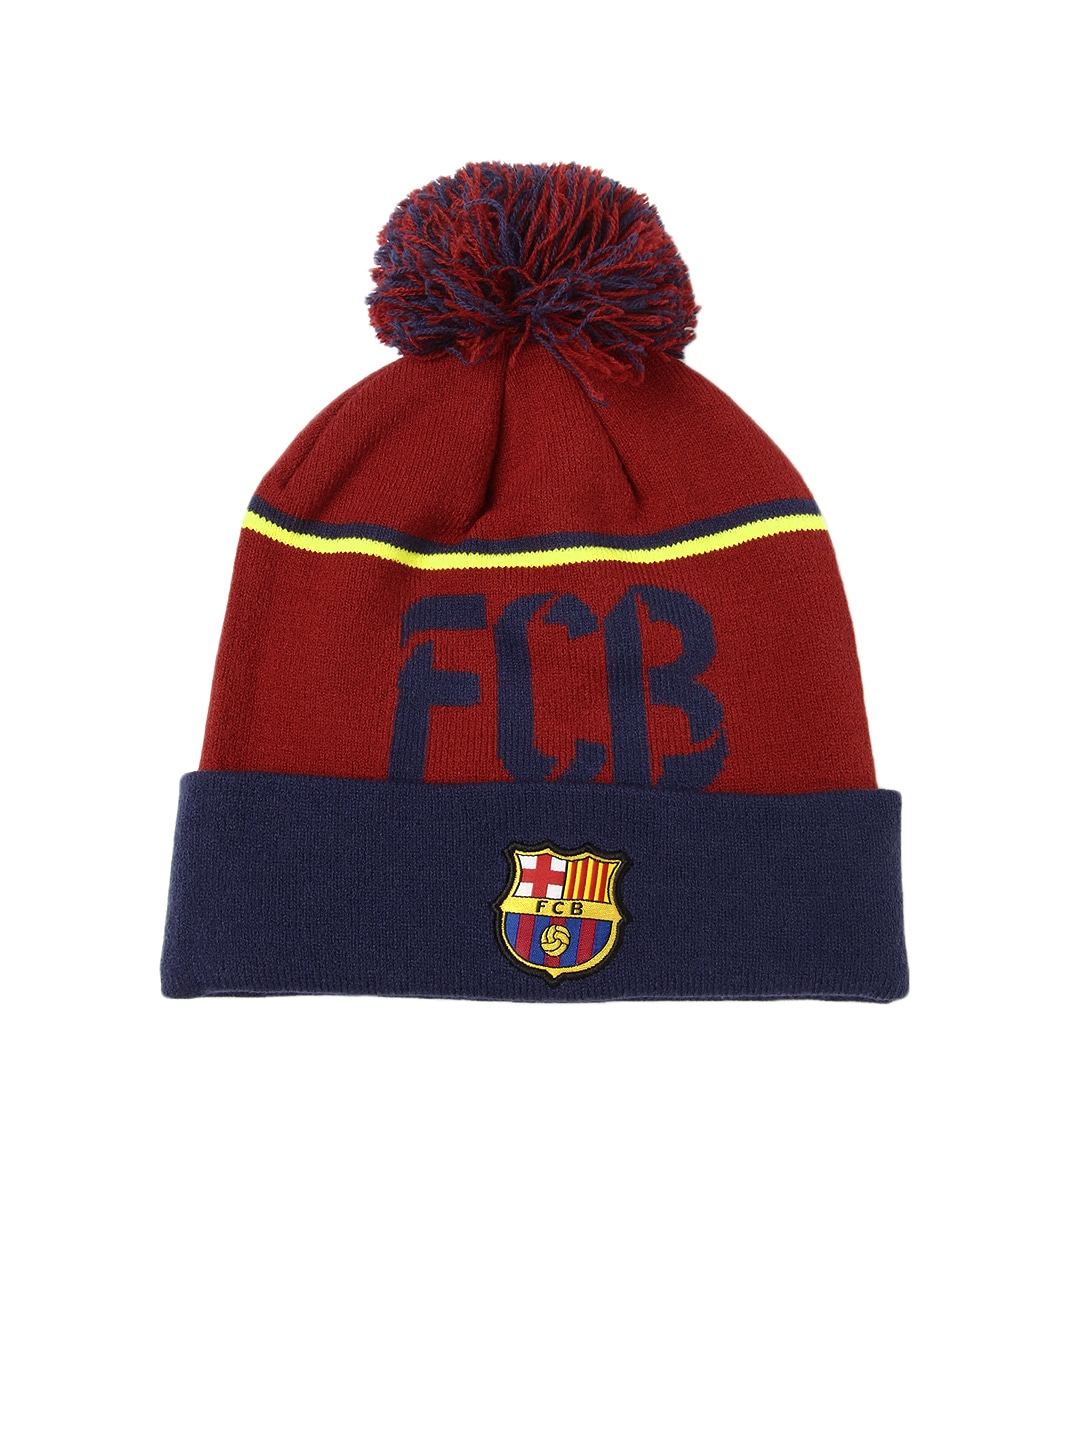 Nike 576995-647 Unisex Maroon Fcb Beanie Cap - Best Price in India ... d63ae378843